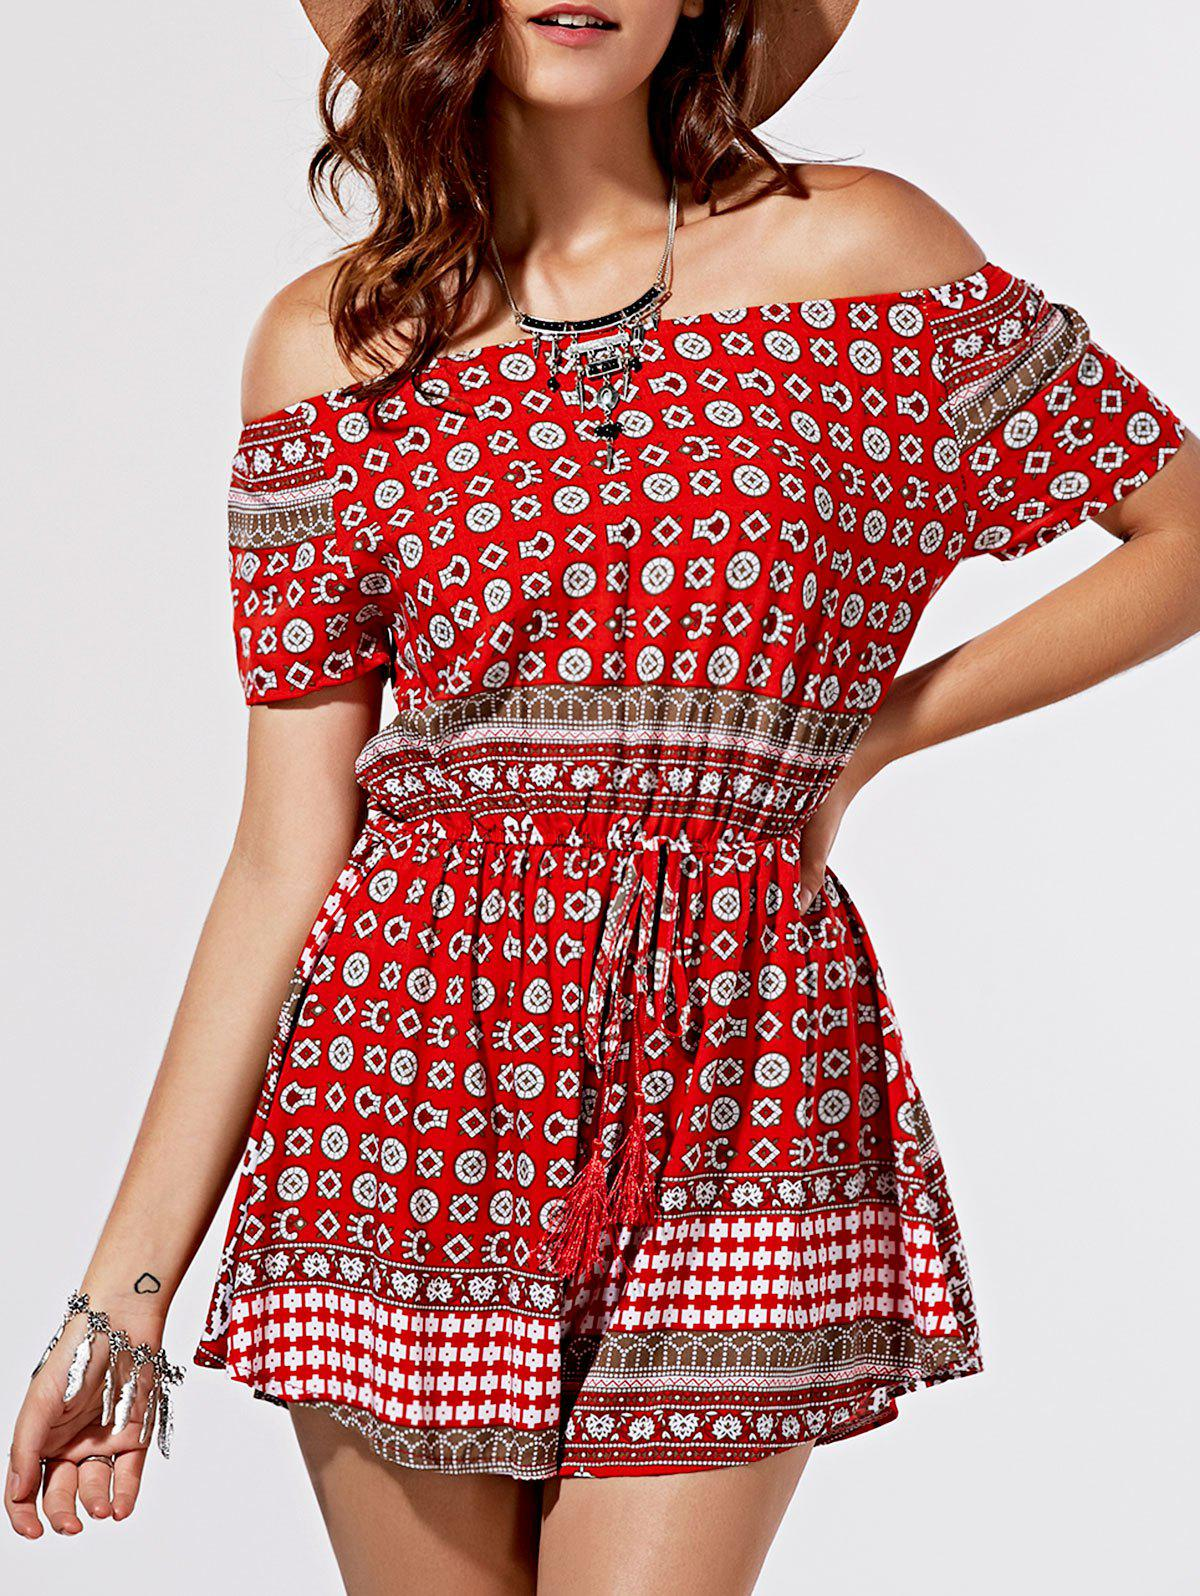 New Chic Totem Print Off The Shoulder Short Sleeve Romper For Women